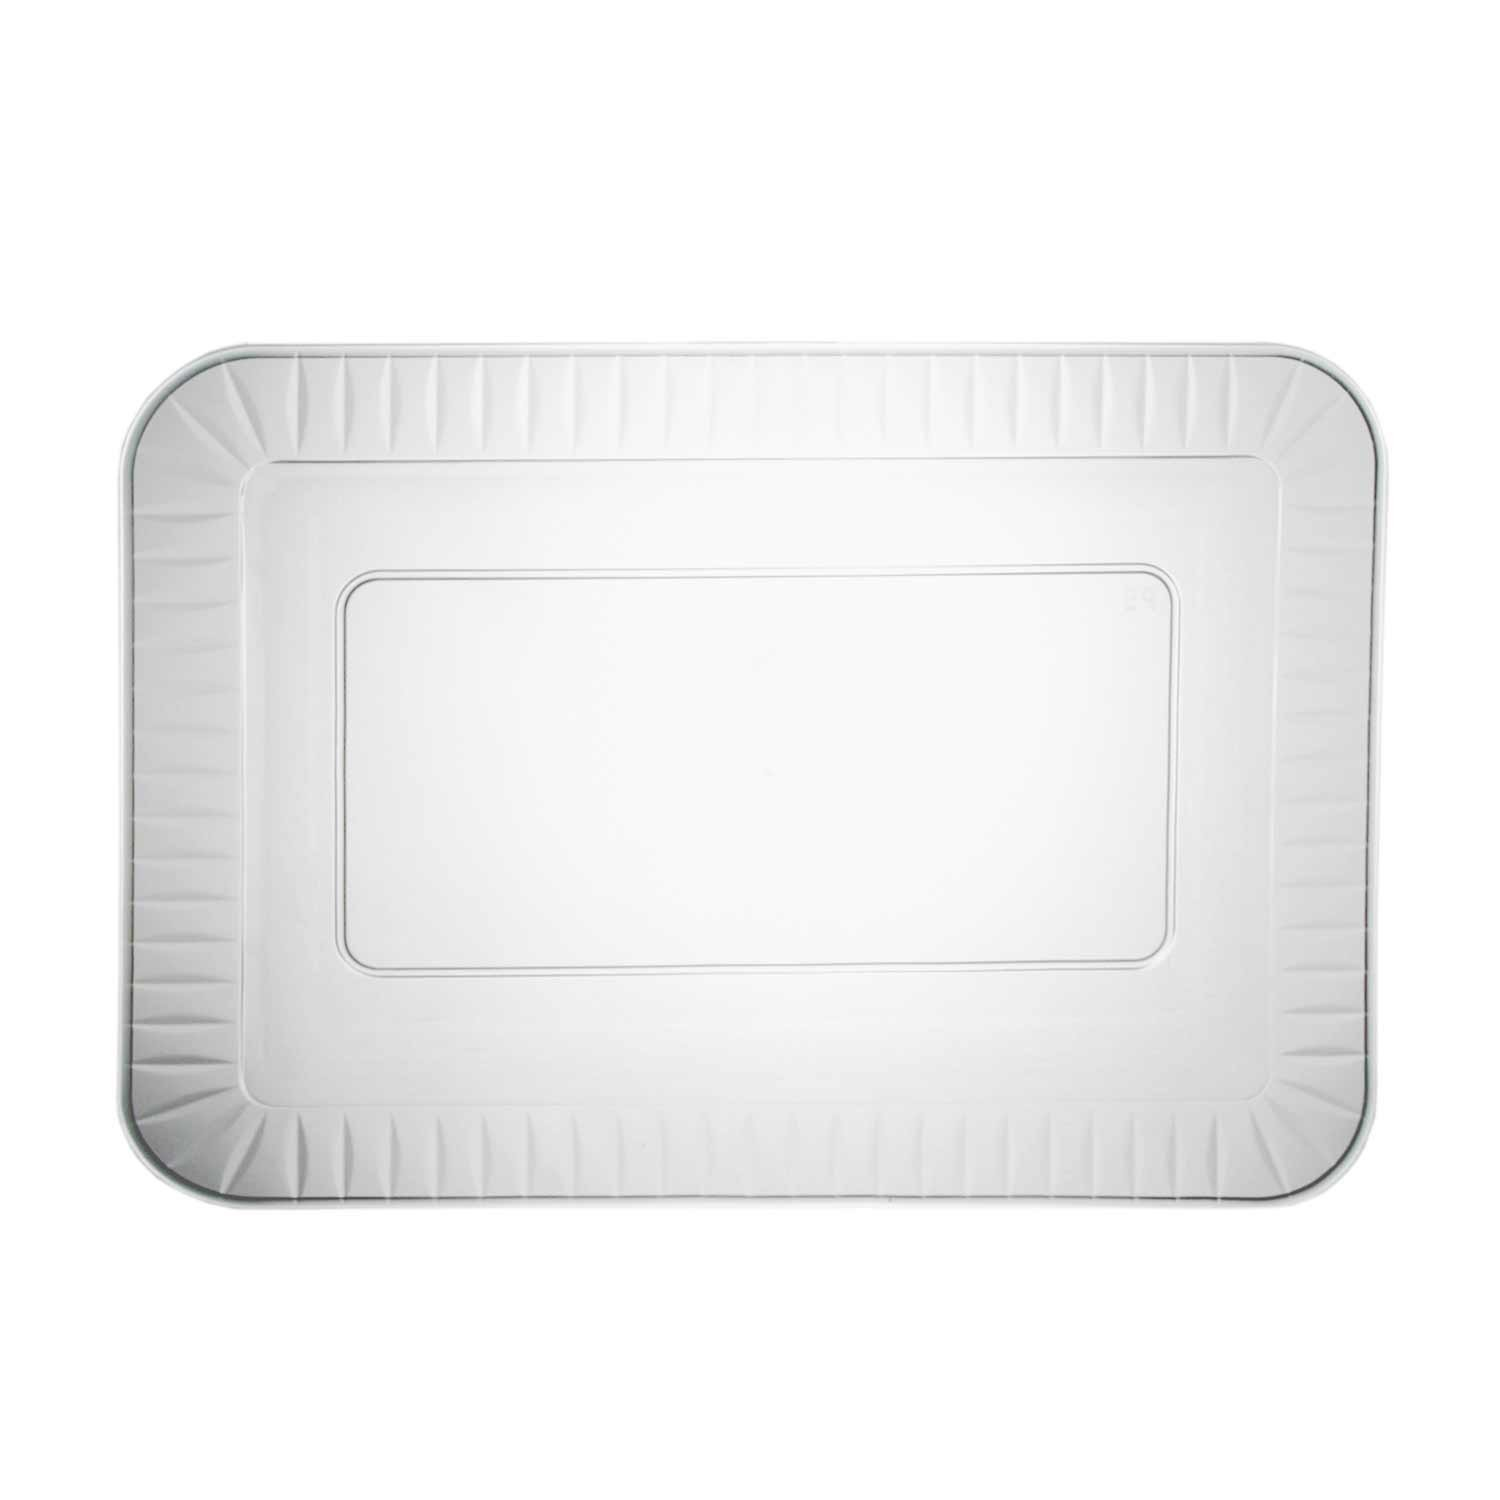 Party Essentials Elegance Quality Hard Plastic 5 x 7-Inch Rectangular Appetizer Plates, Clear, 24 Count